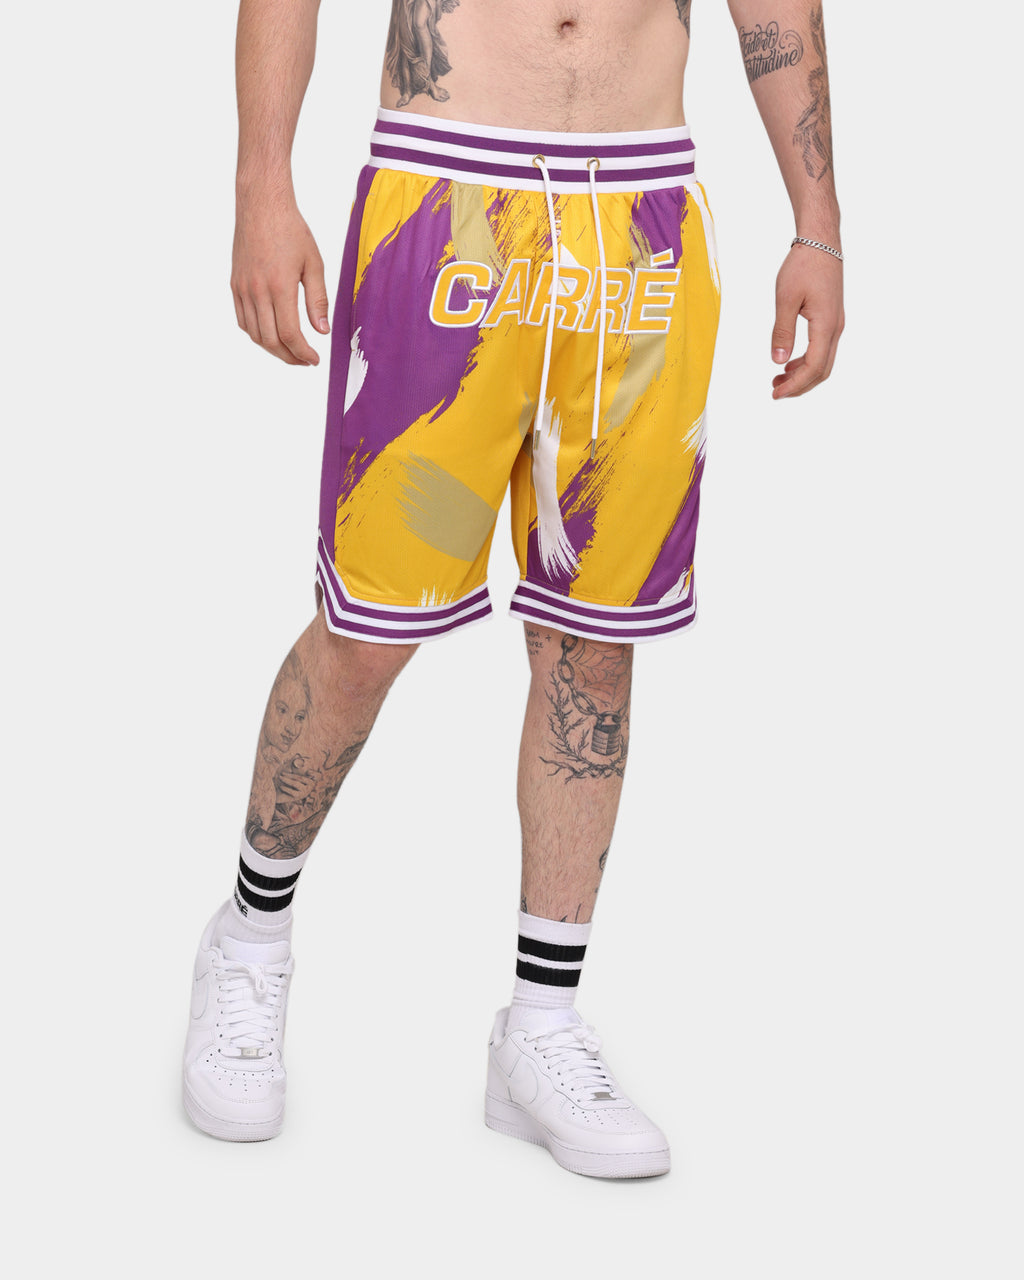 Carré Retro Ball Short Yellow/Purple/W